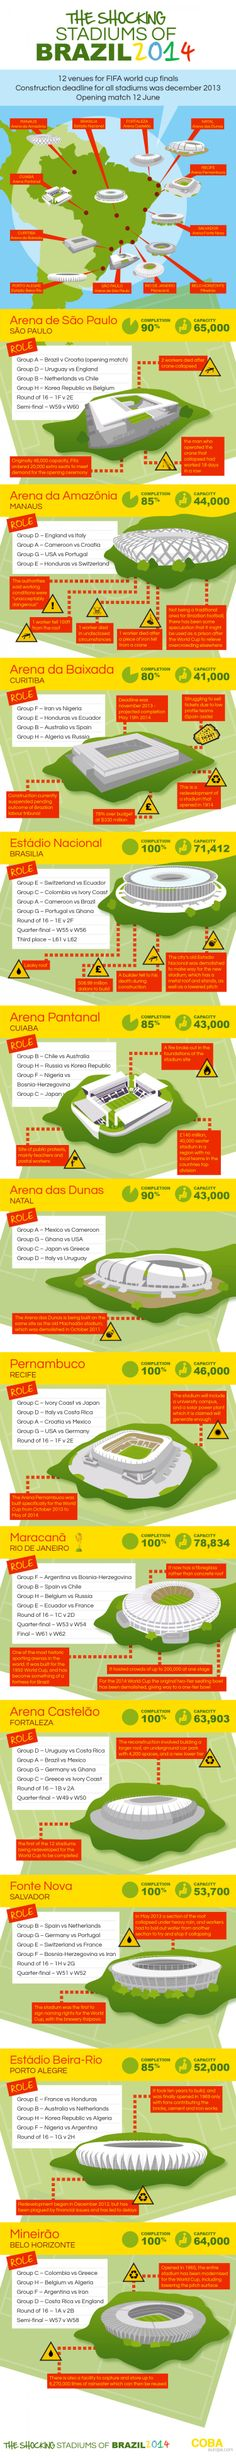 the-heavy-toll-of-the-stadiums-of-brazil-2014_533400d92ed06_w1500.jpg (1500×15625)